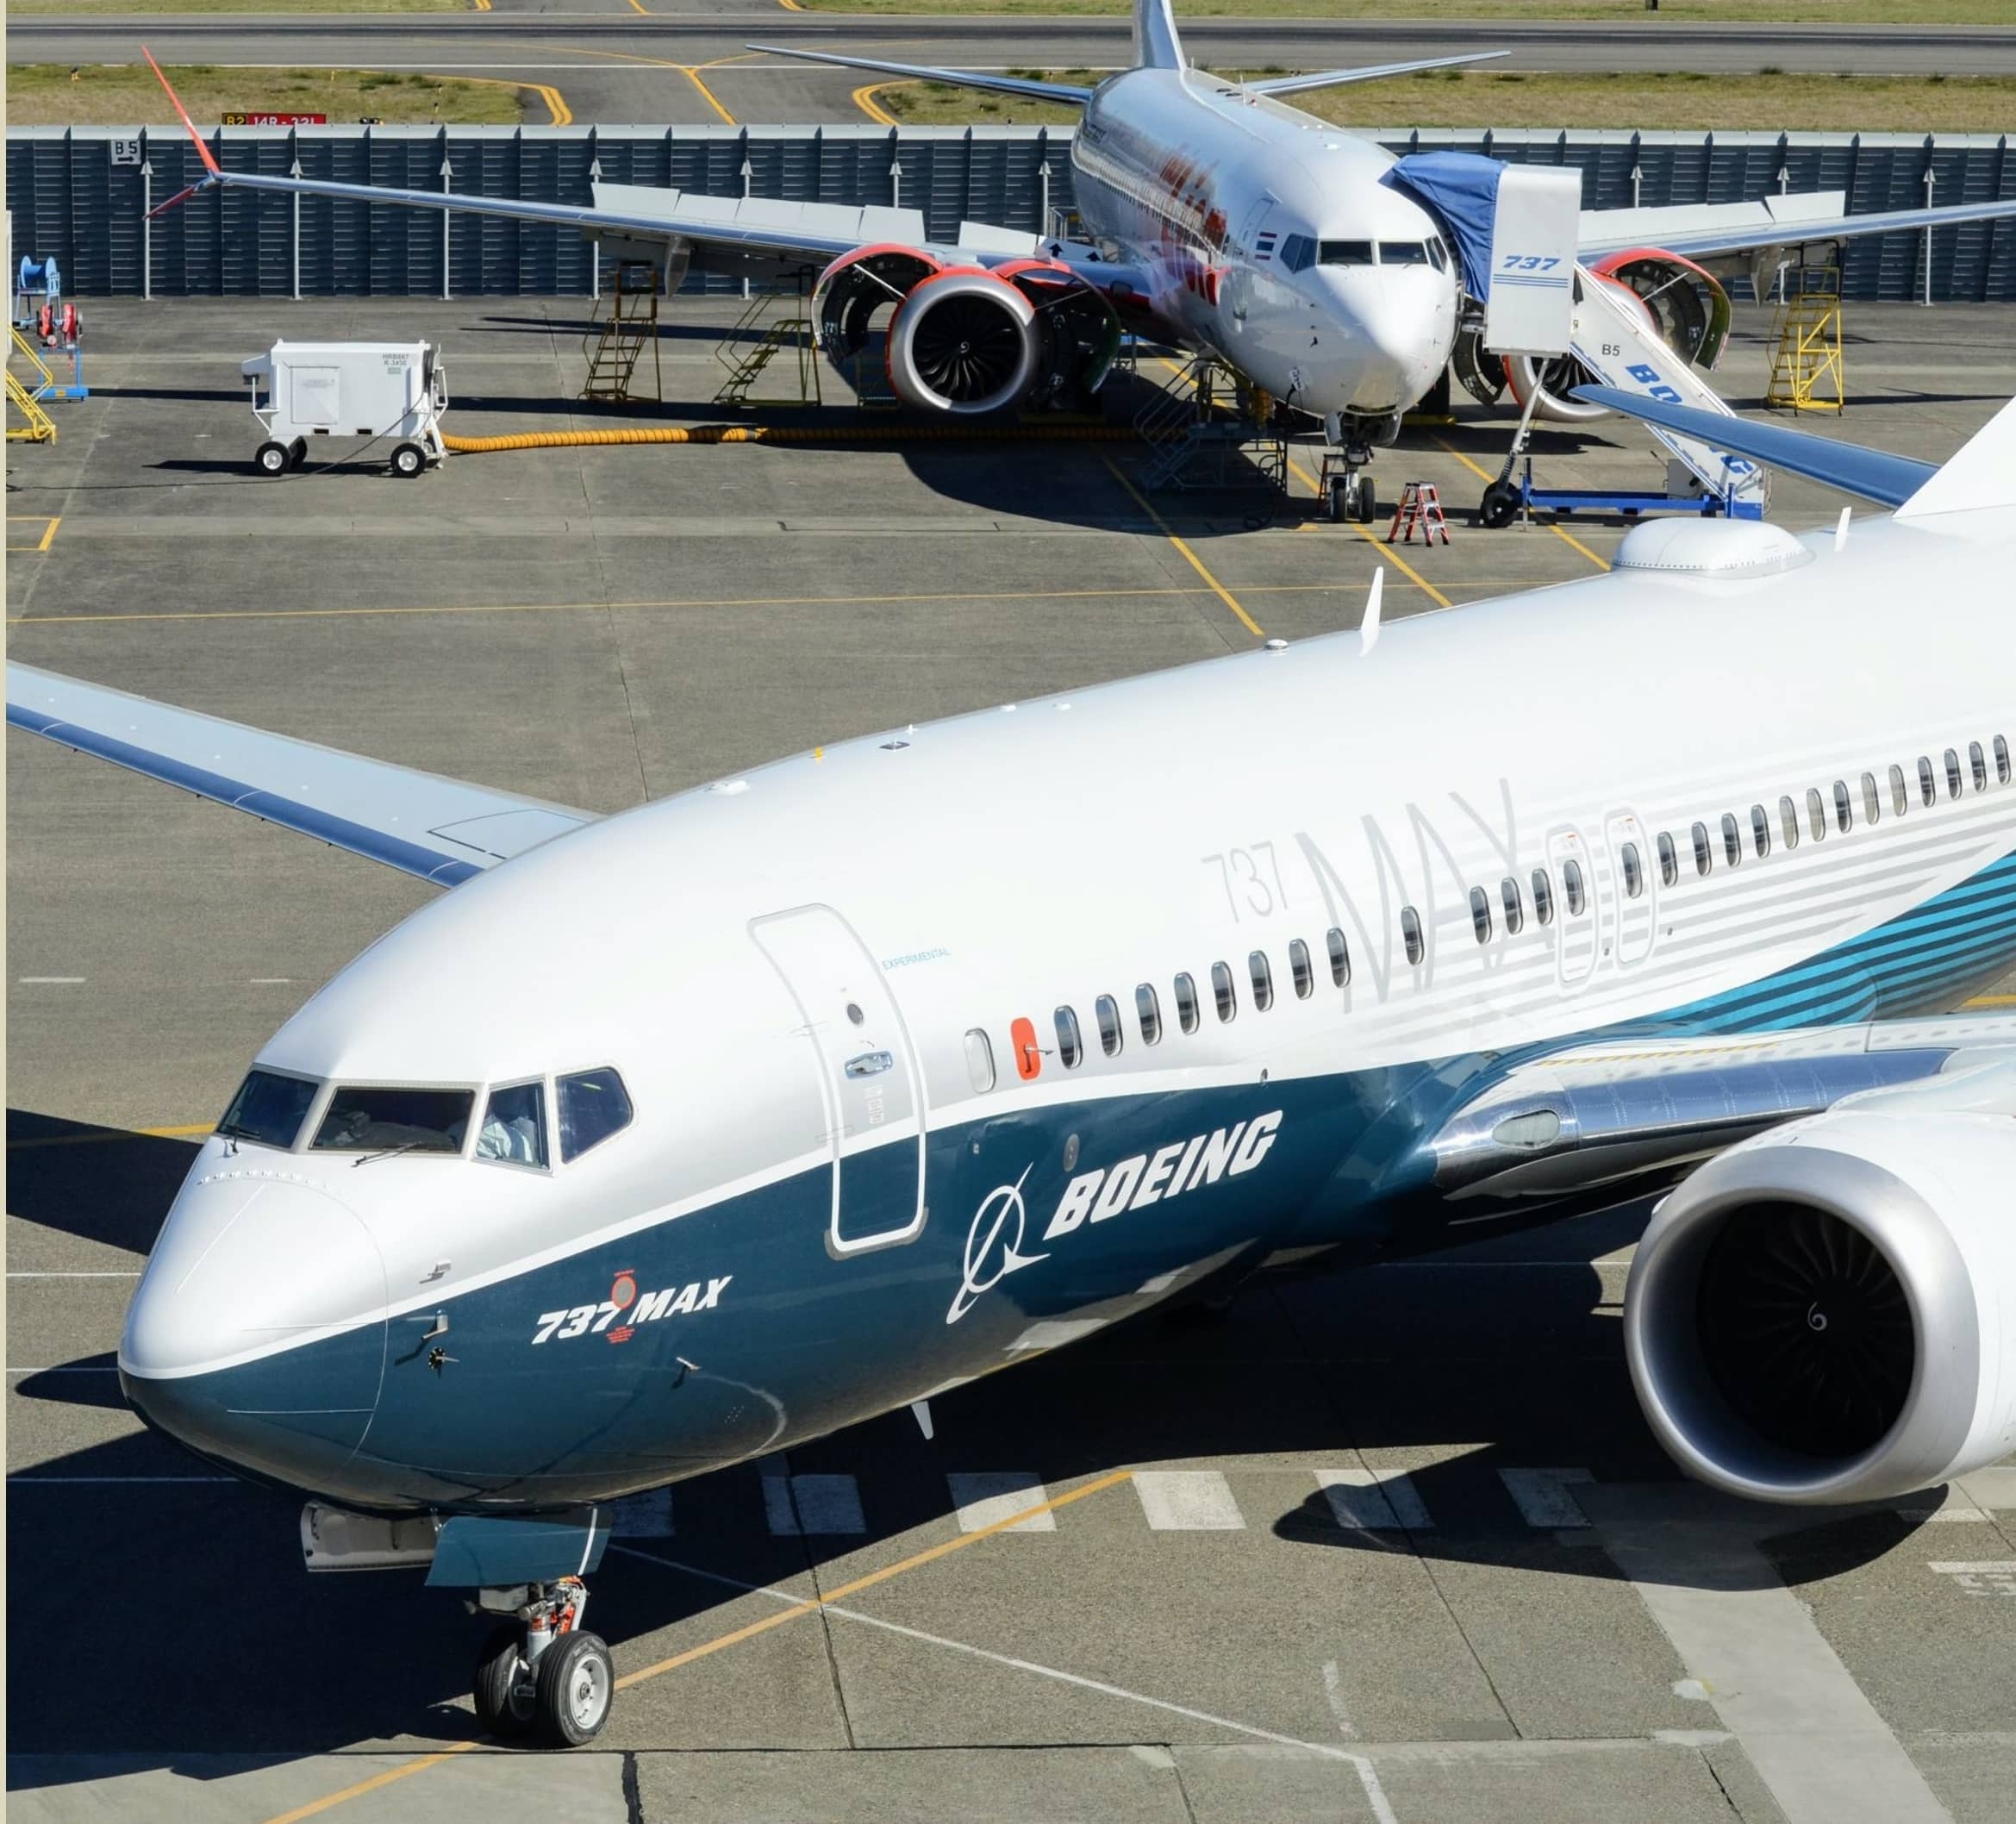 FAA SPELLS OUT DESIGN CHANGES NEEDED IN GROUNDED BOEING JET